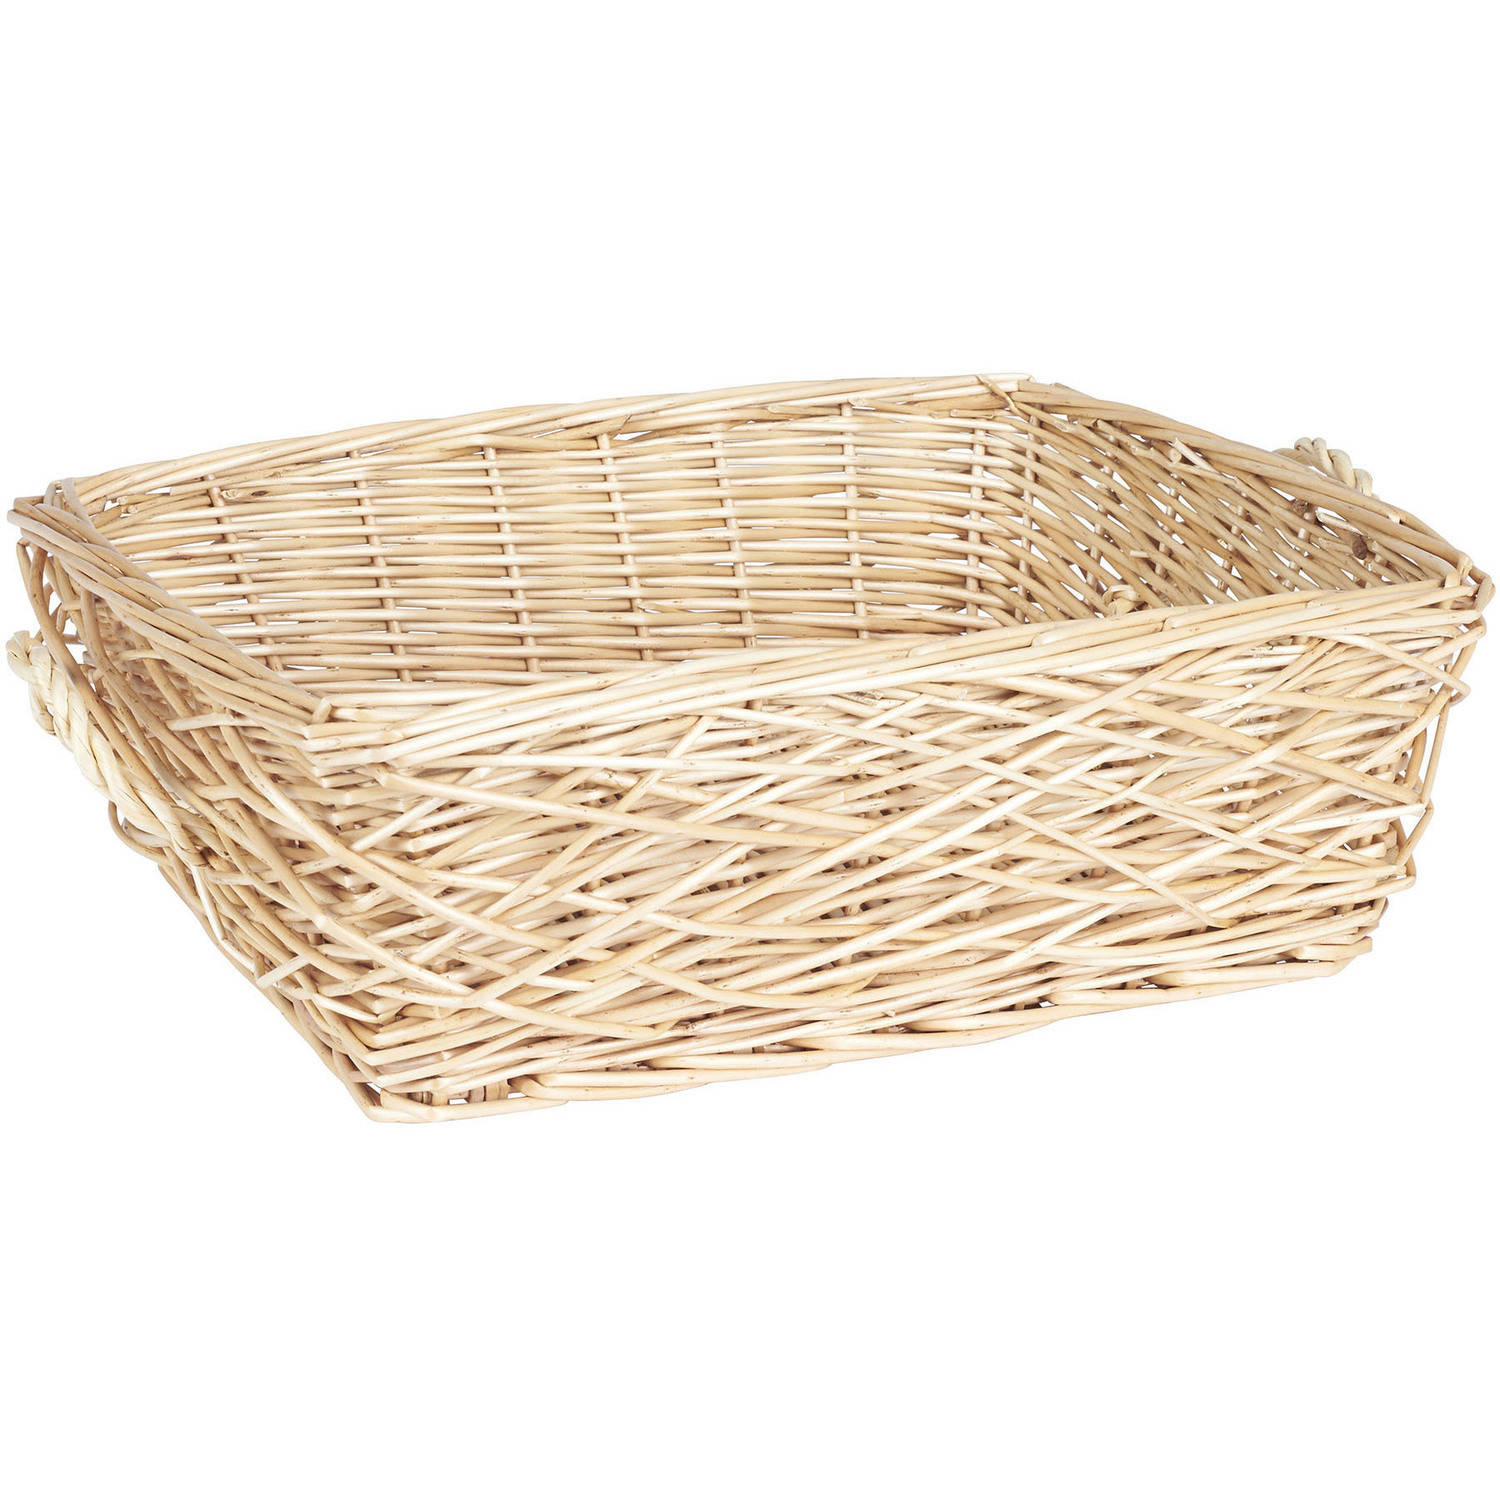 Household Essentials Spring Bird Nest Willow Basket